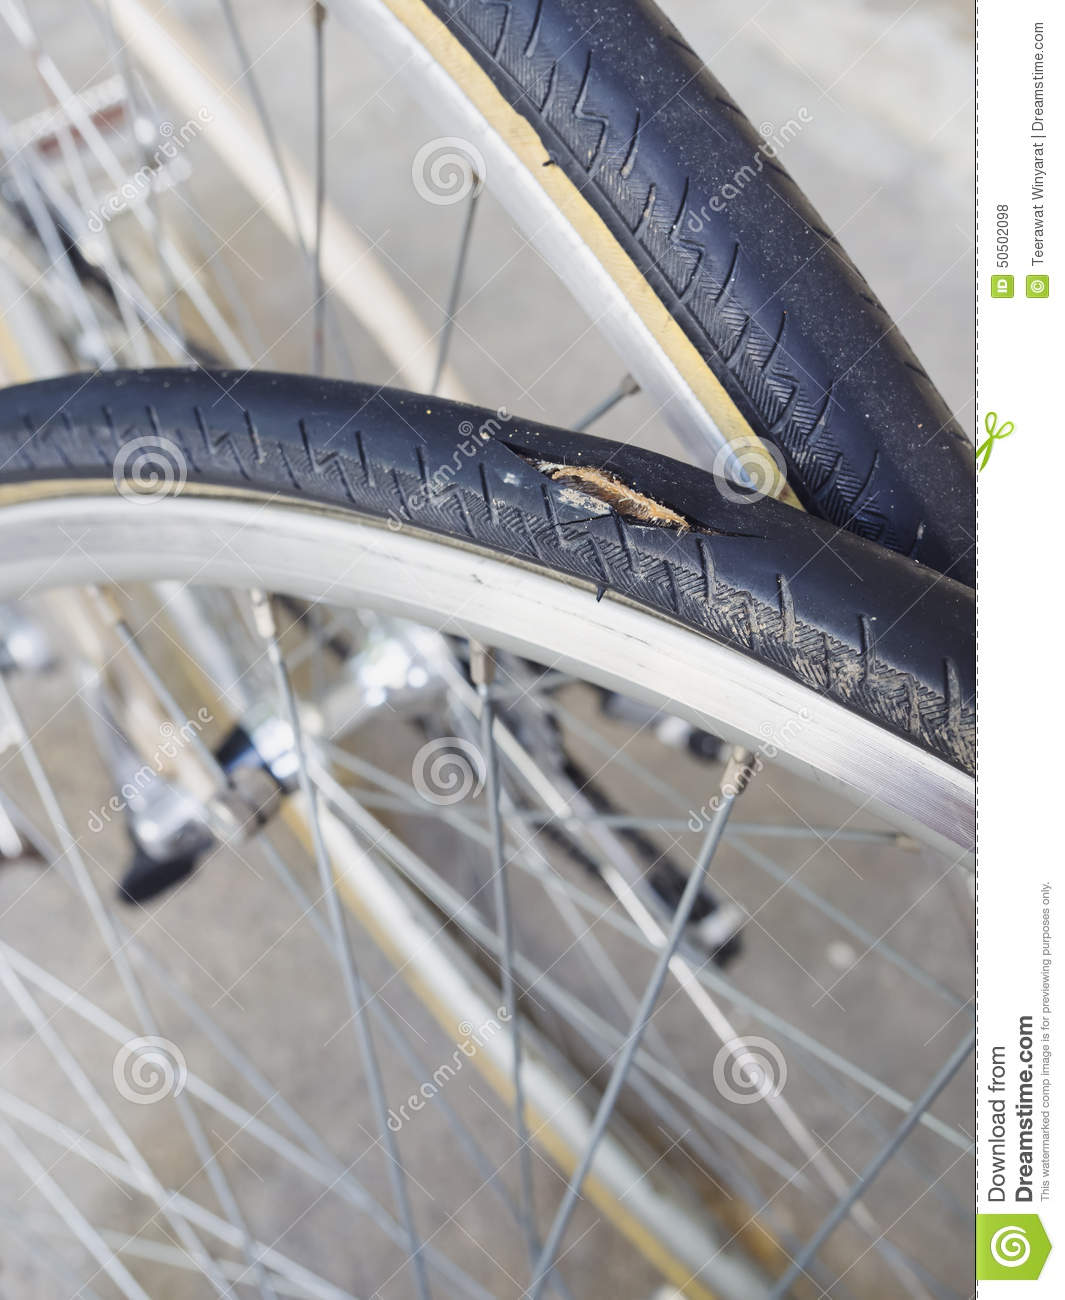 Punctured tire Bicycle wheel parts service